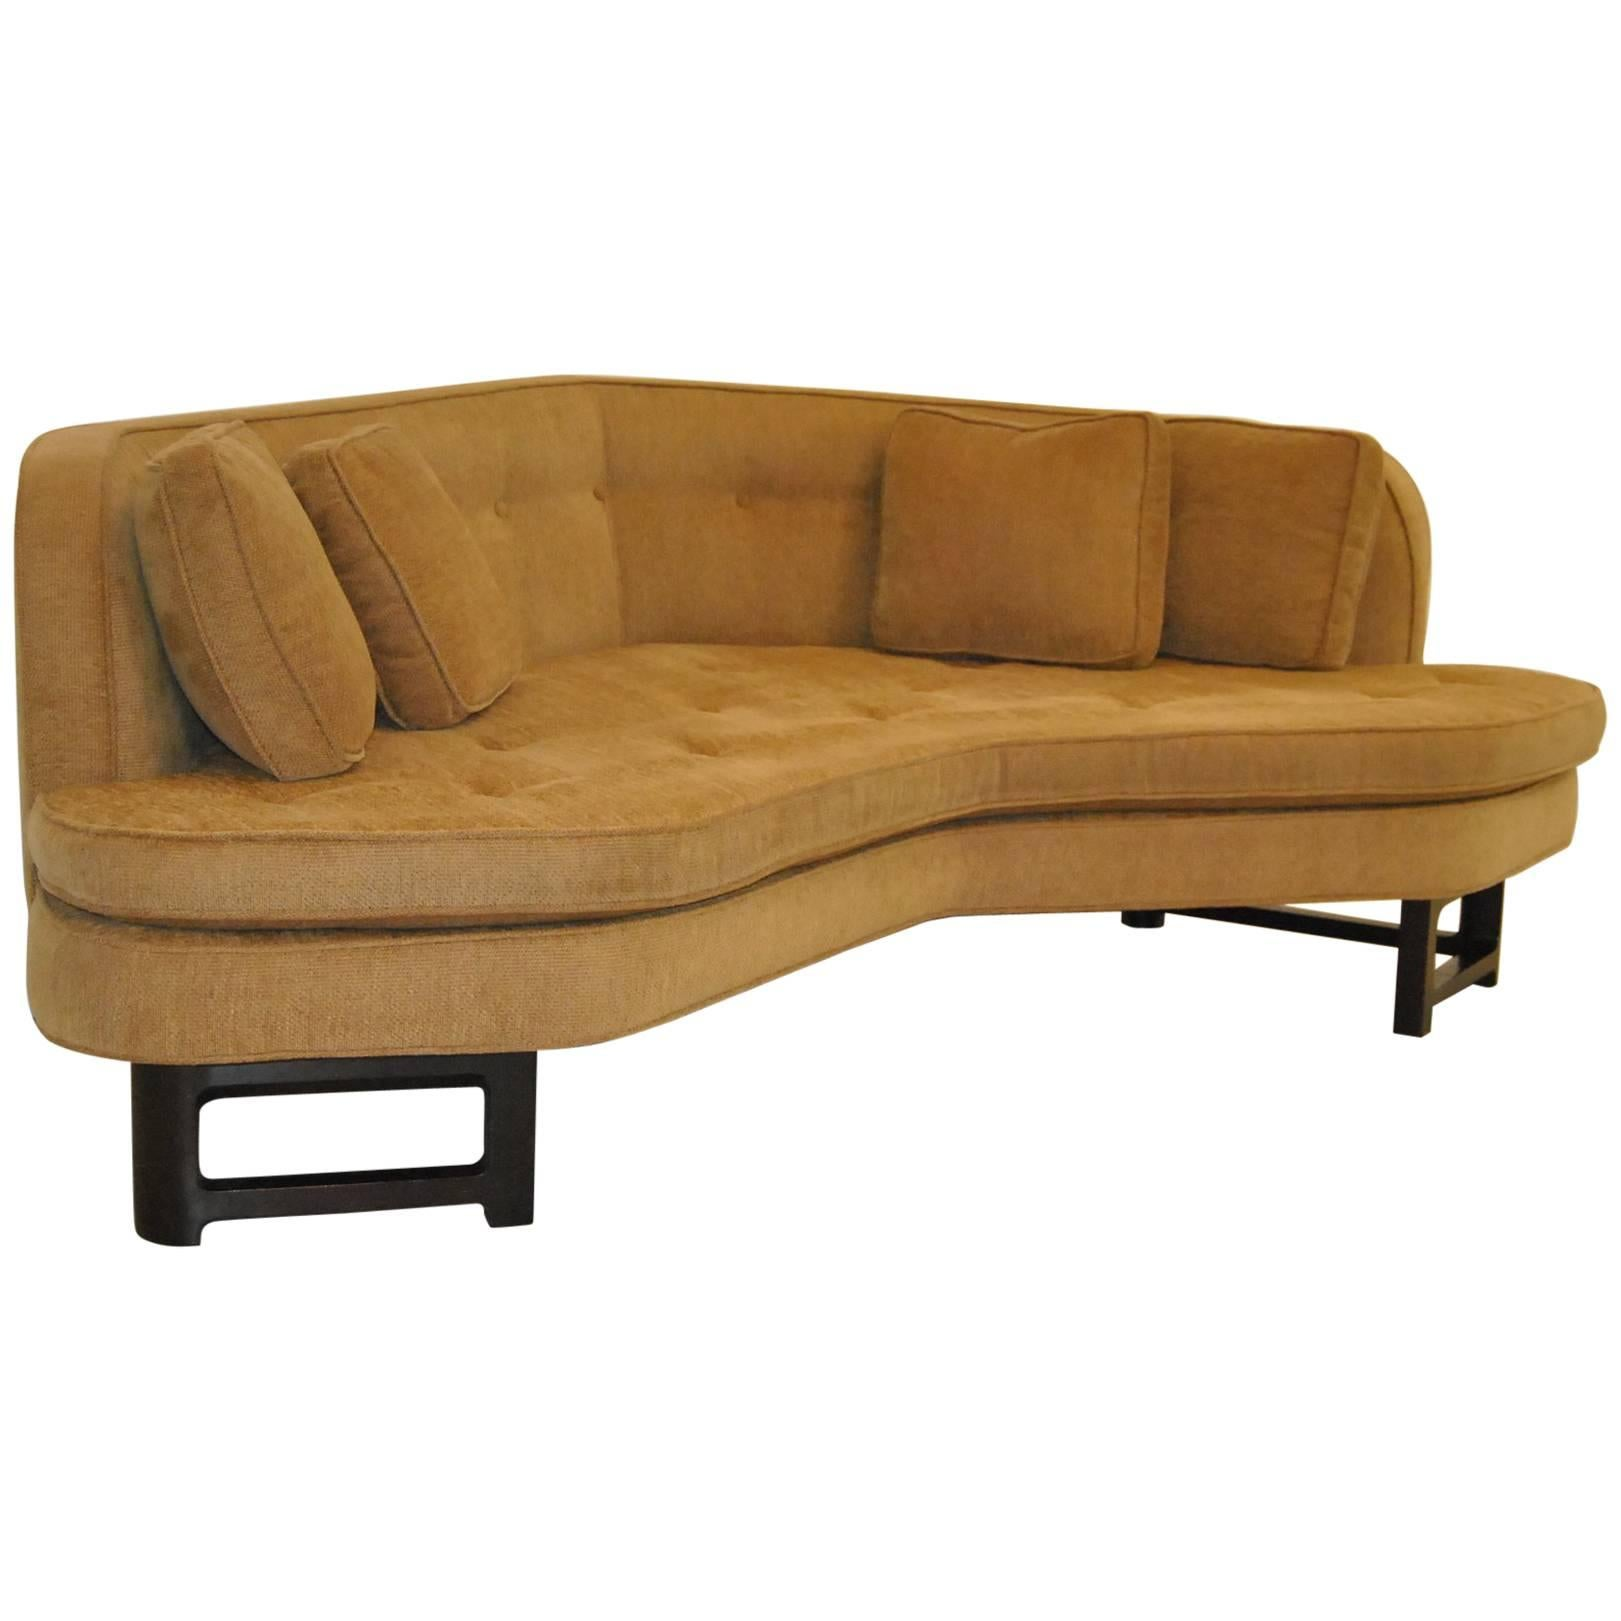 Exceptional Mid Century Modern Sofa By Edward Wormley For Dunbar Furniture Janus  Collection For Sale